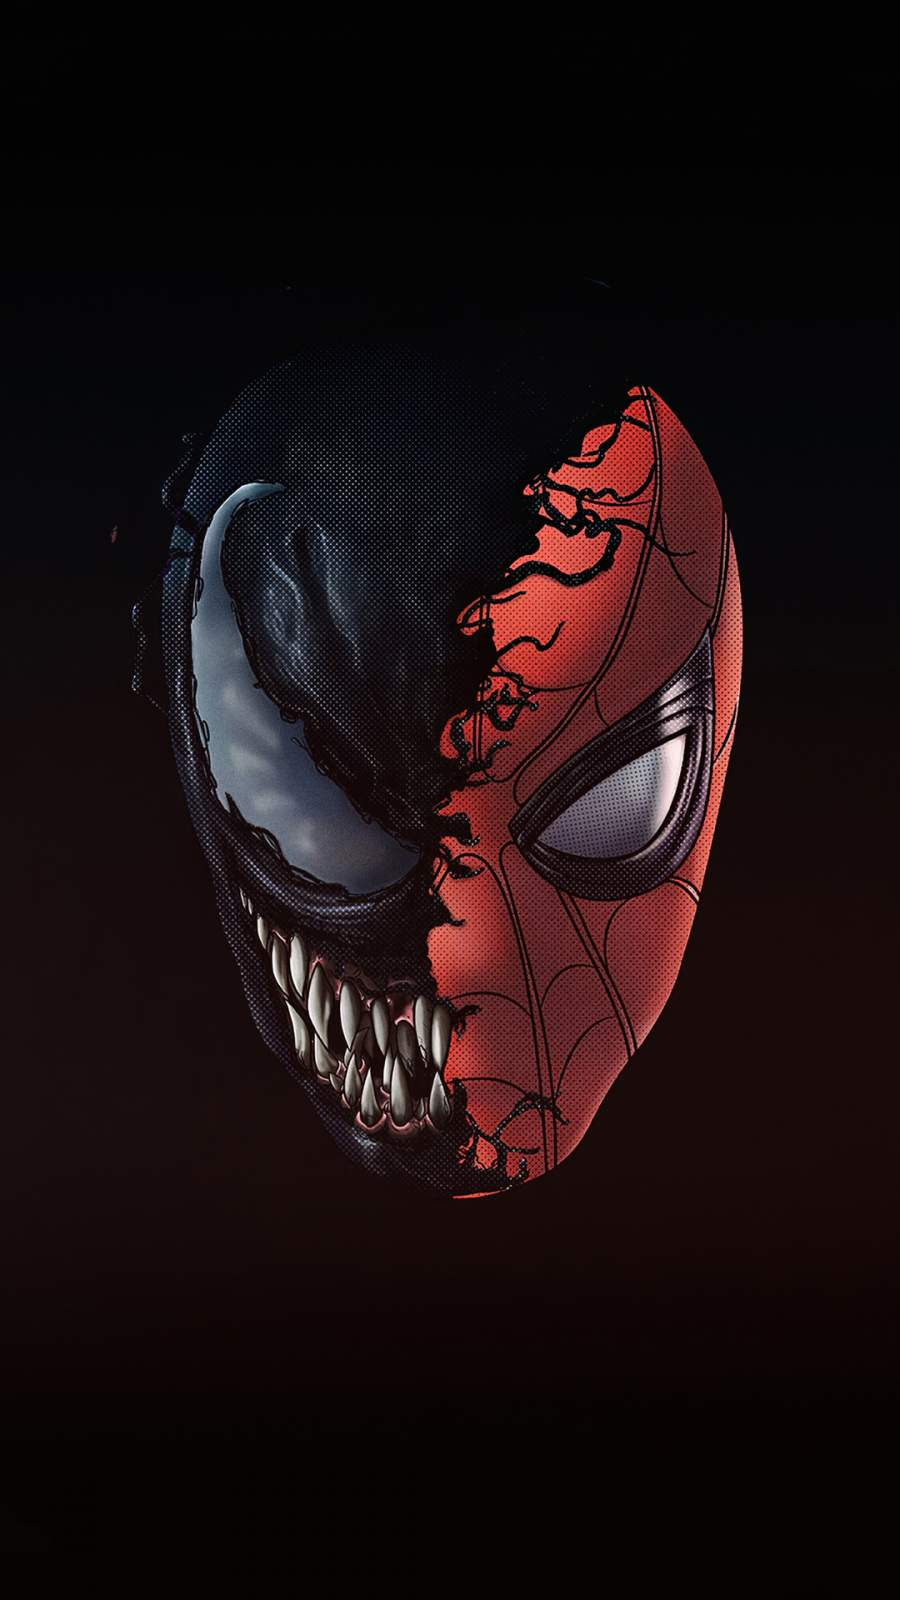 Spiderman X Venom 4k iPhone Wallpaper